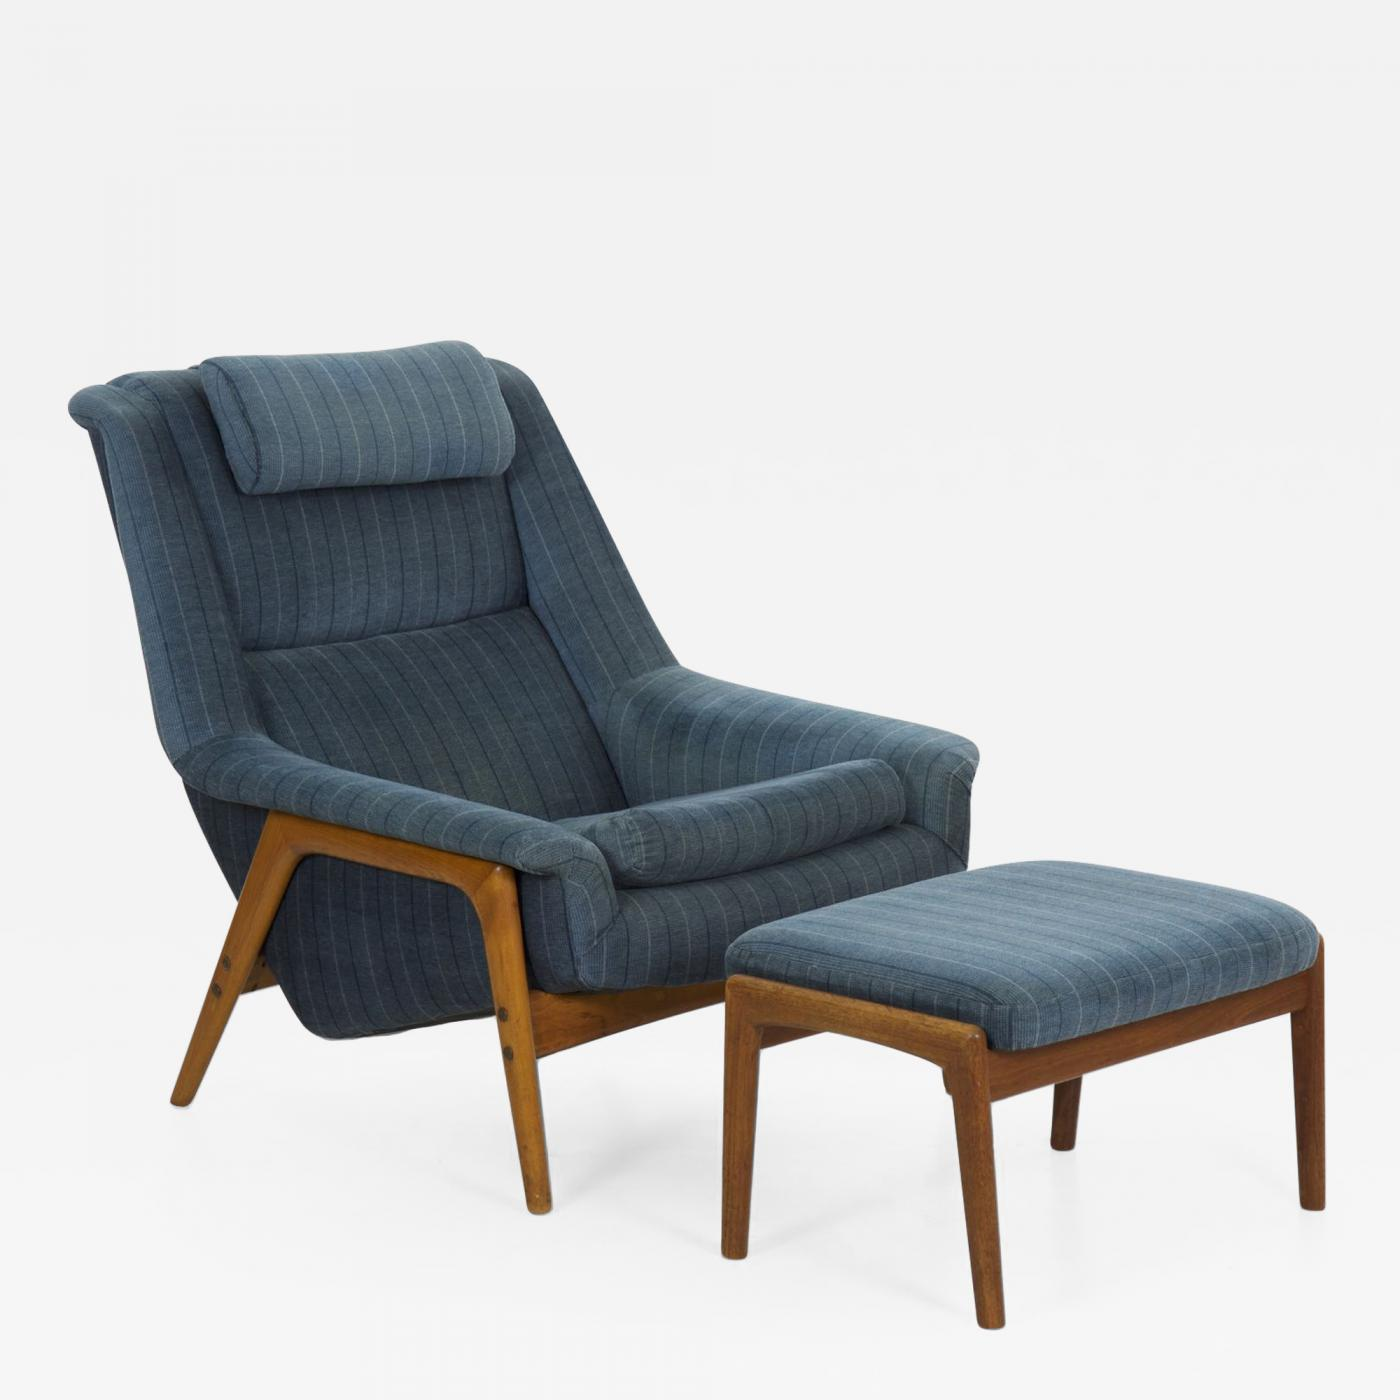 Chairs With Ottoman Folke Ohlsson Mid Century Lounge Chair With Adjustable Ottoman By Folke Ohlsson